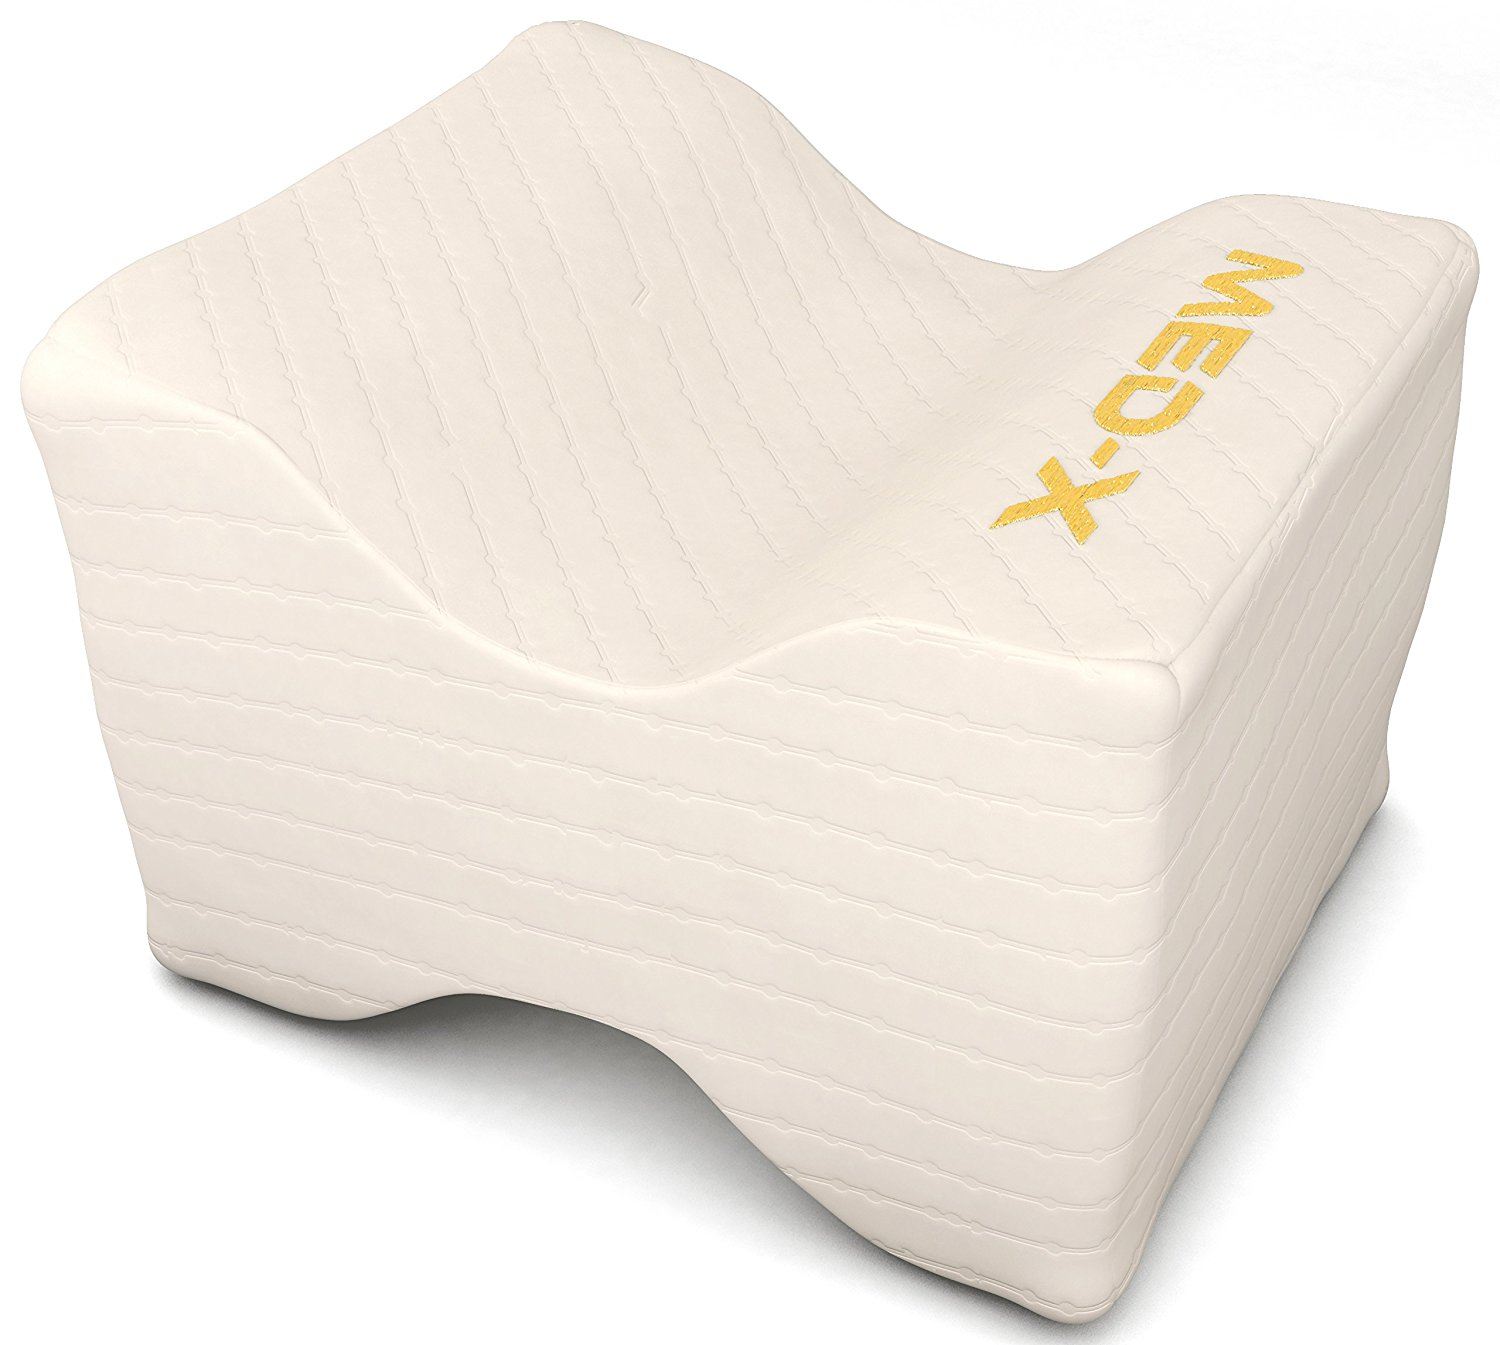 Knee Pillow Pain Relief – Memory Foam